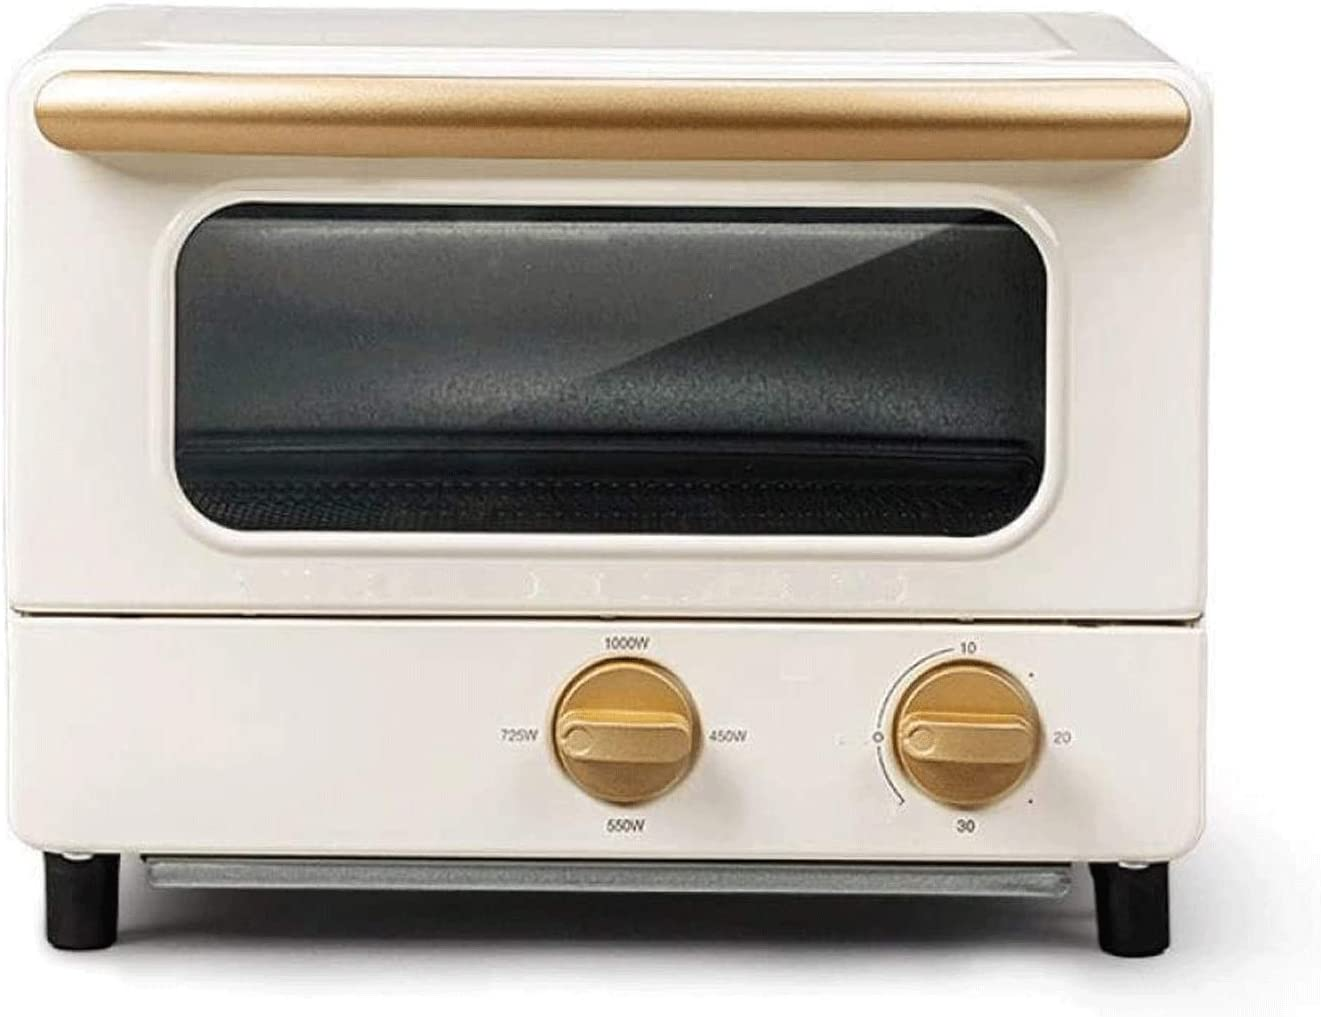 Z-COLOR Electric Oven Frying and Baking Integrated Household Baking Small Multi-Function Automatic 8L Mini Oven,Multi Cooking Function & Grill,Adjustable Temperature Control (Color : Ivory)